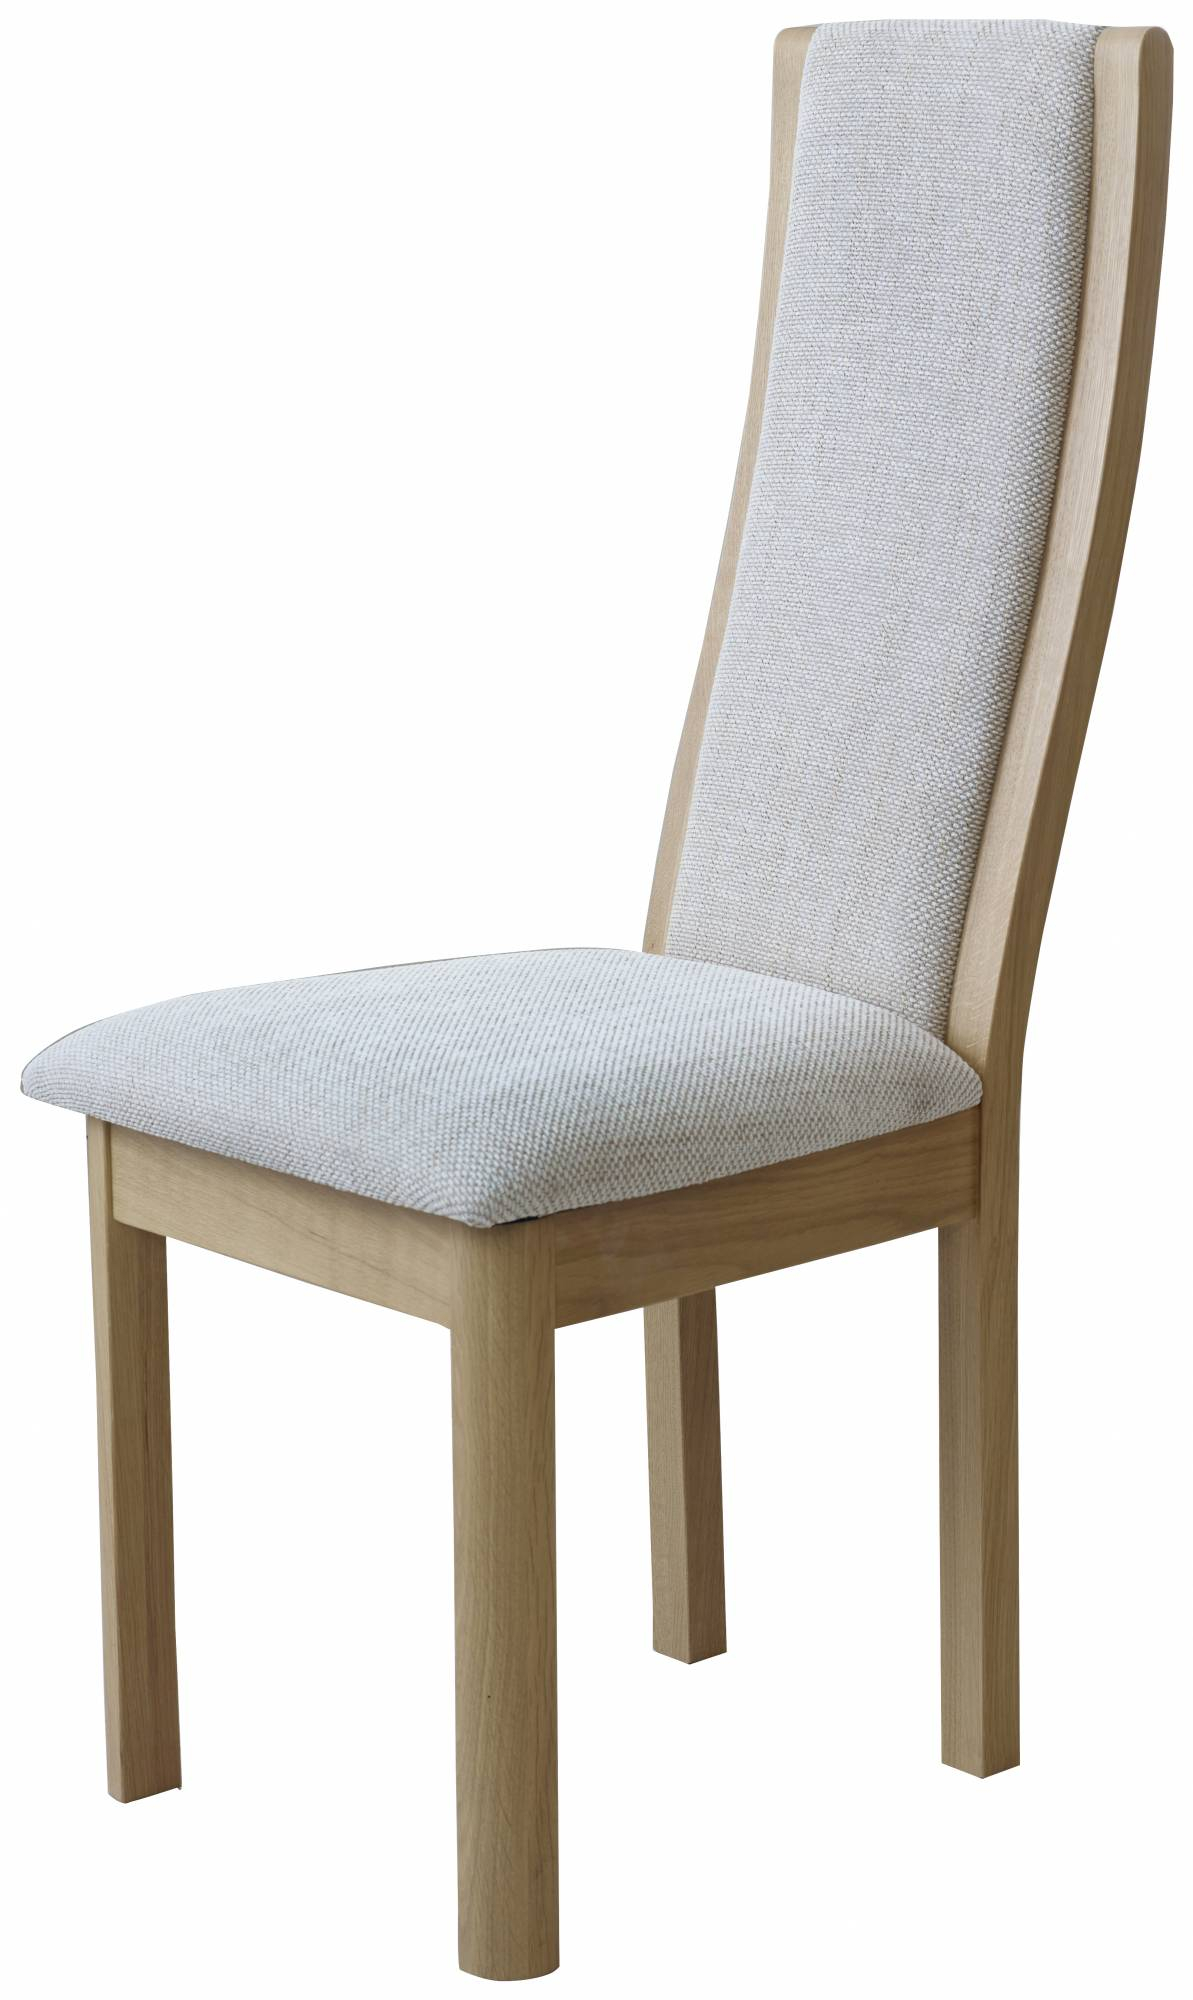 Braemer Dining Collection High Back Chair Beige Fabric Regarding High Back Sofas And Chairs (View 7 of 15)